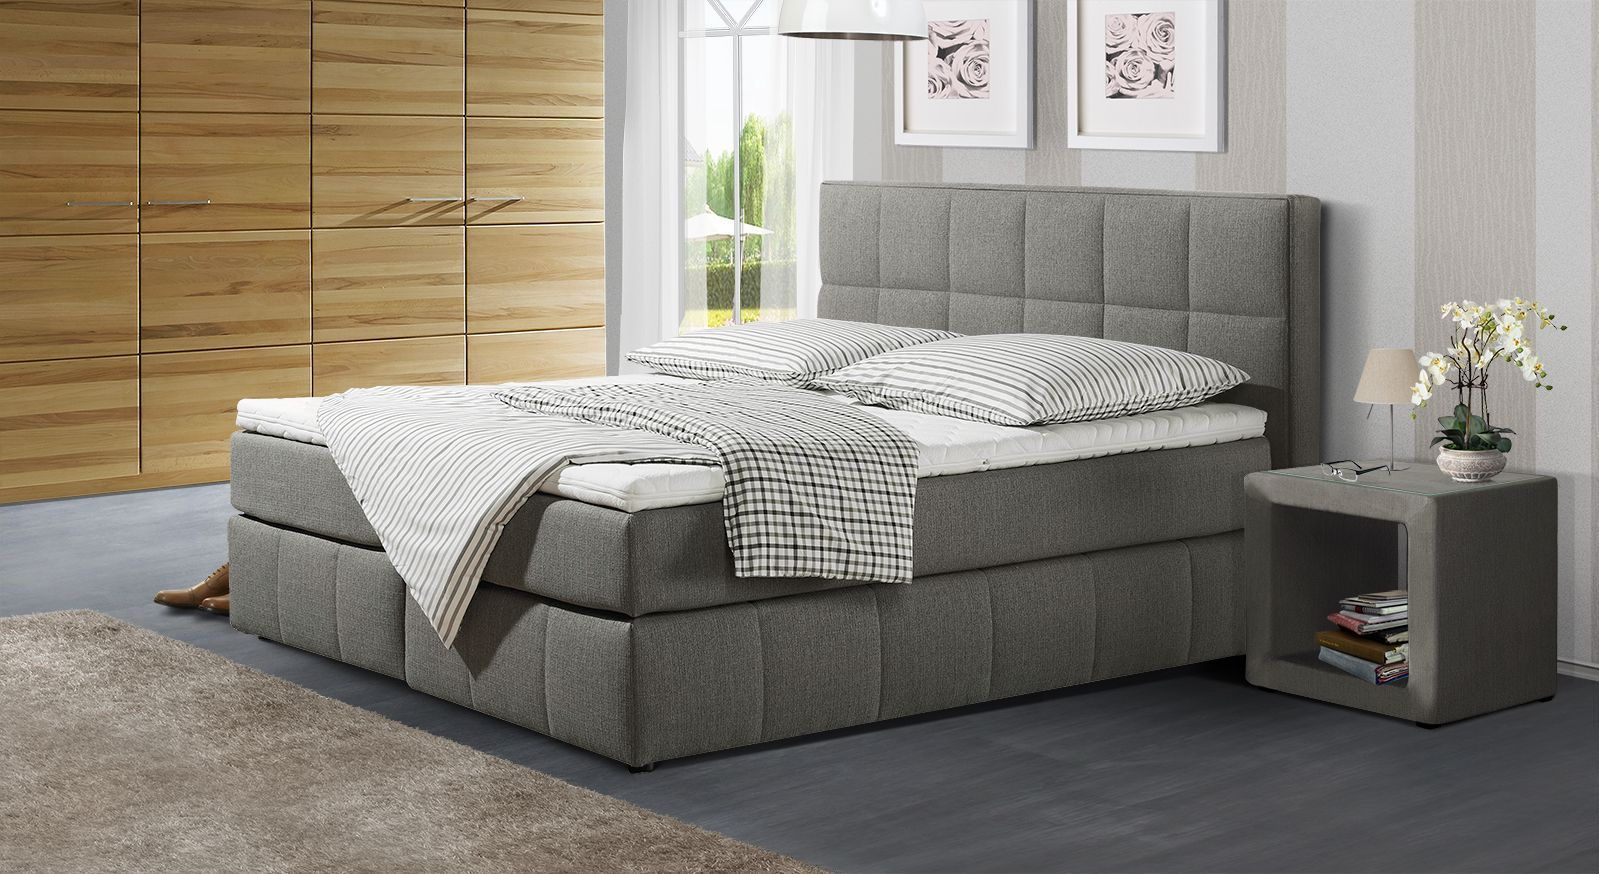 Boxspringbett Belfort in grauem Webstoff